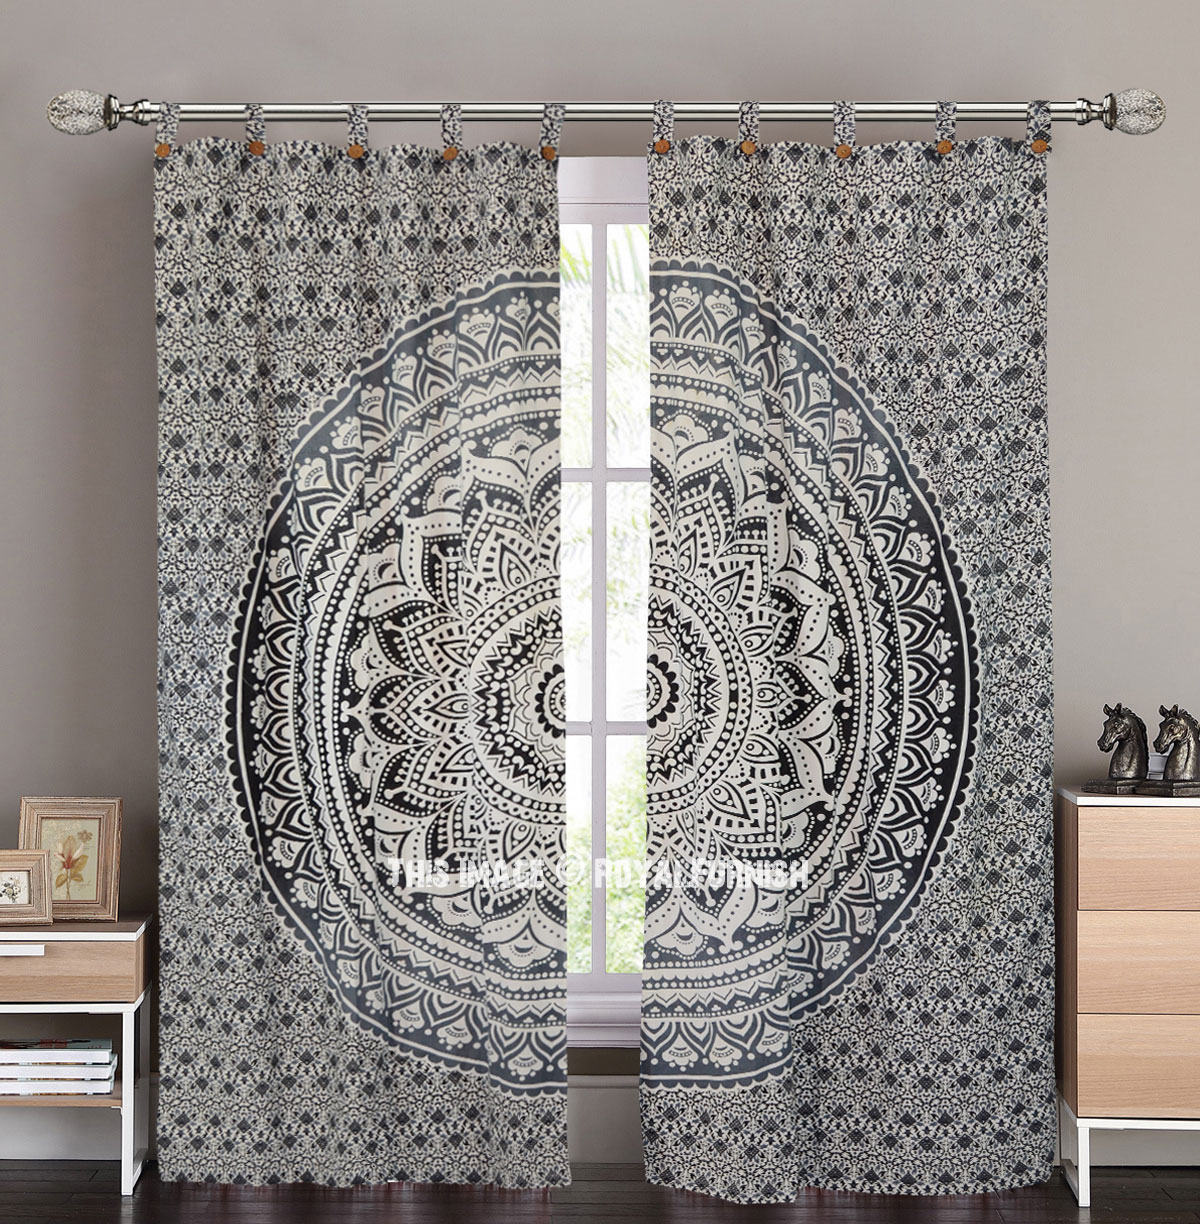 Grey Black Floral Ombre Medallion Tapestry Curtain Panel Pair Royalfurnish Com